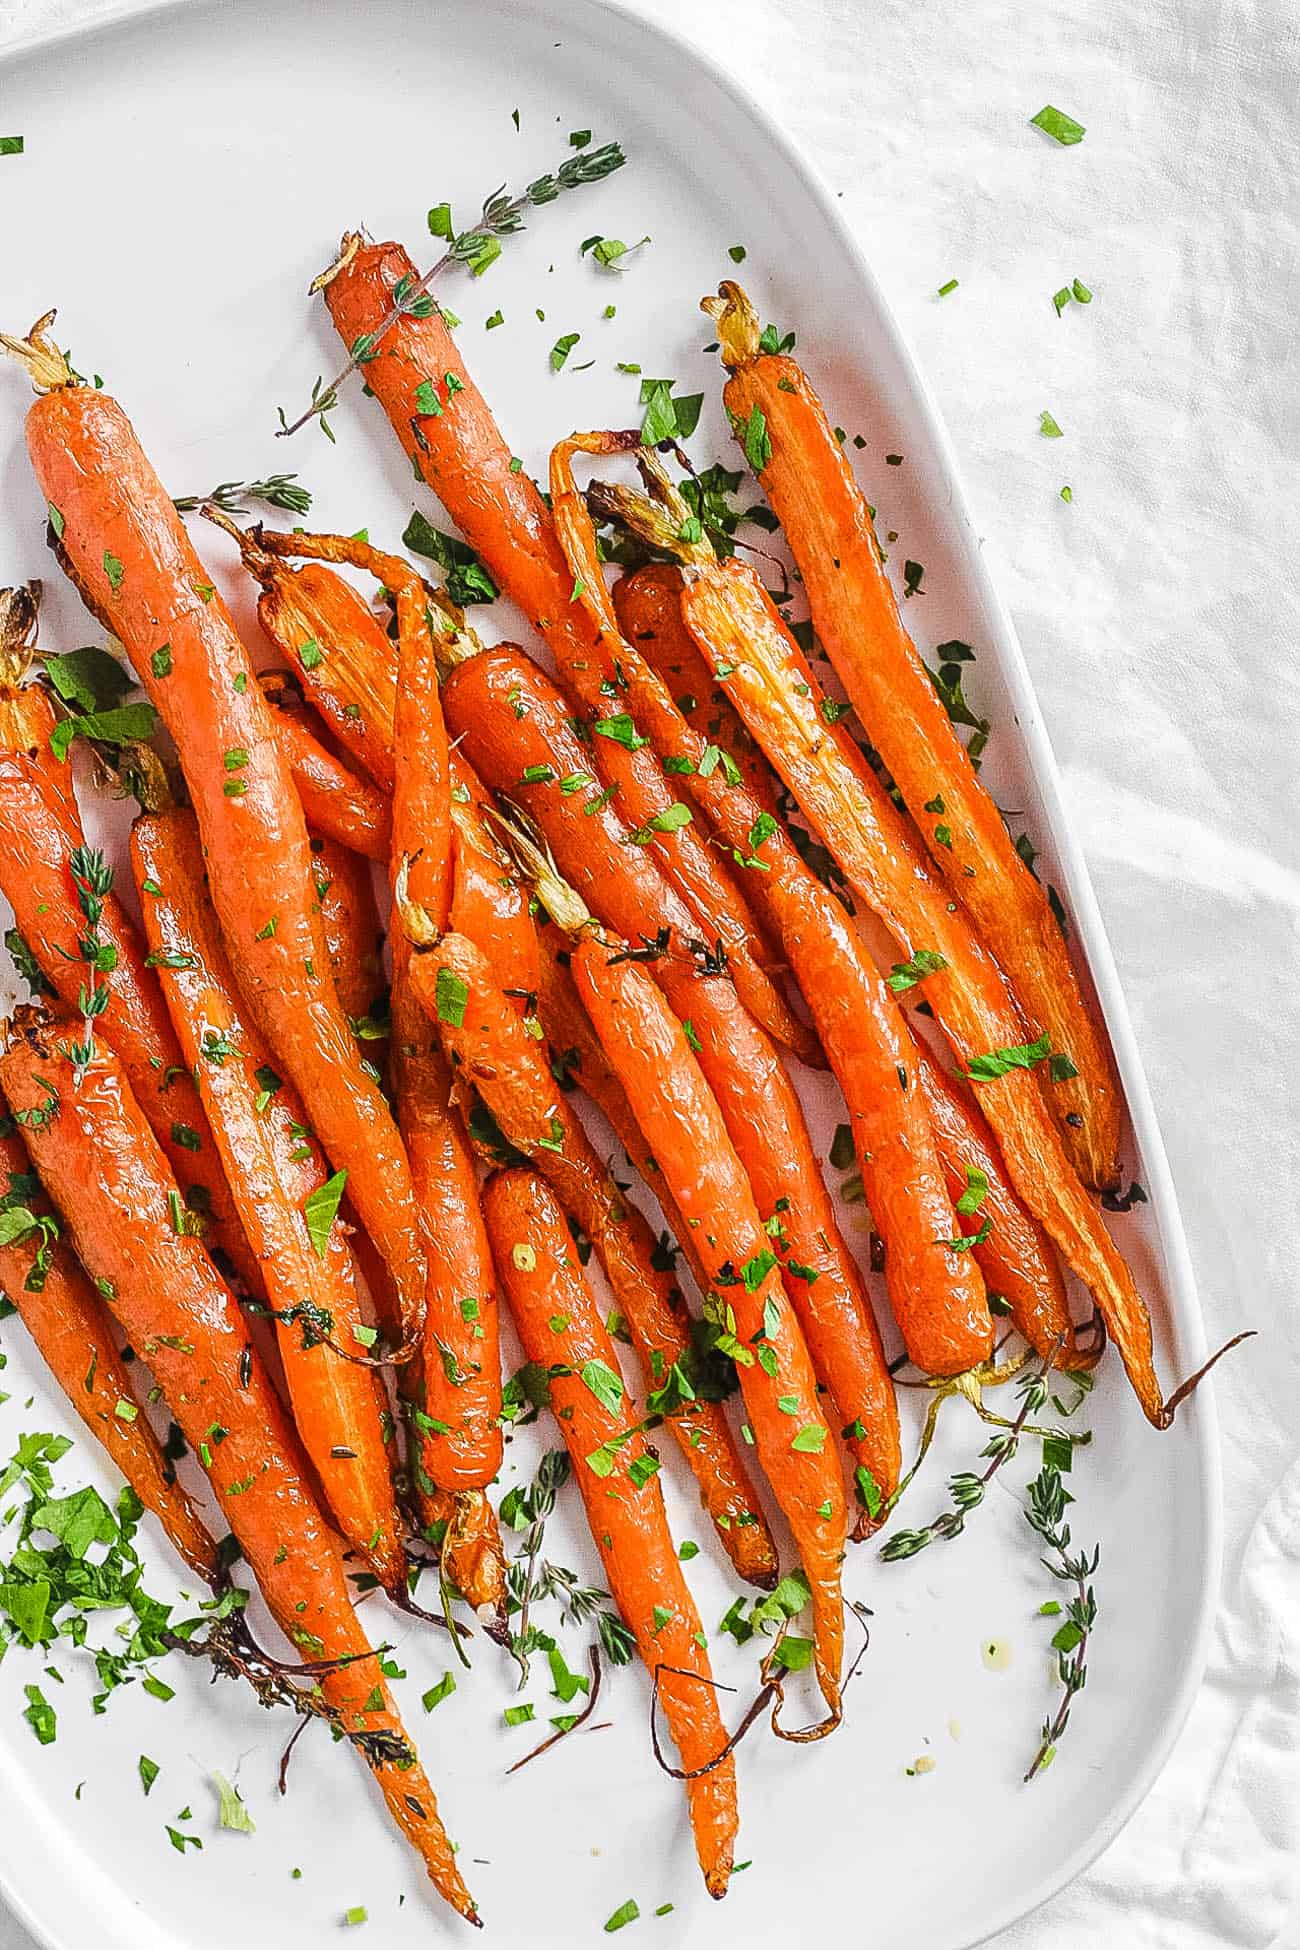 easy delicious air fryer carrots served with fresh herbs on a white plate